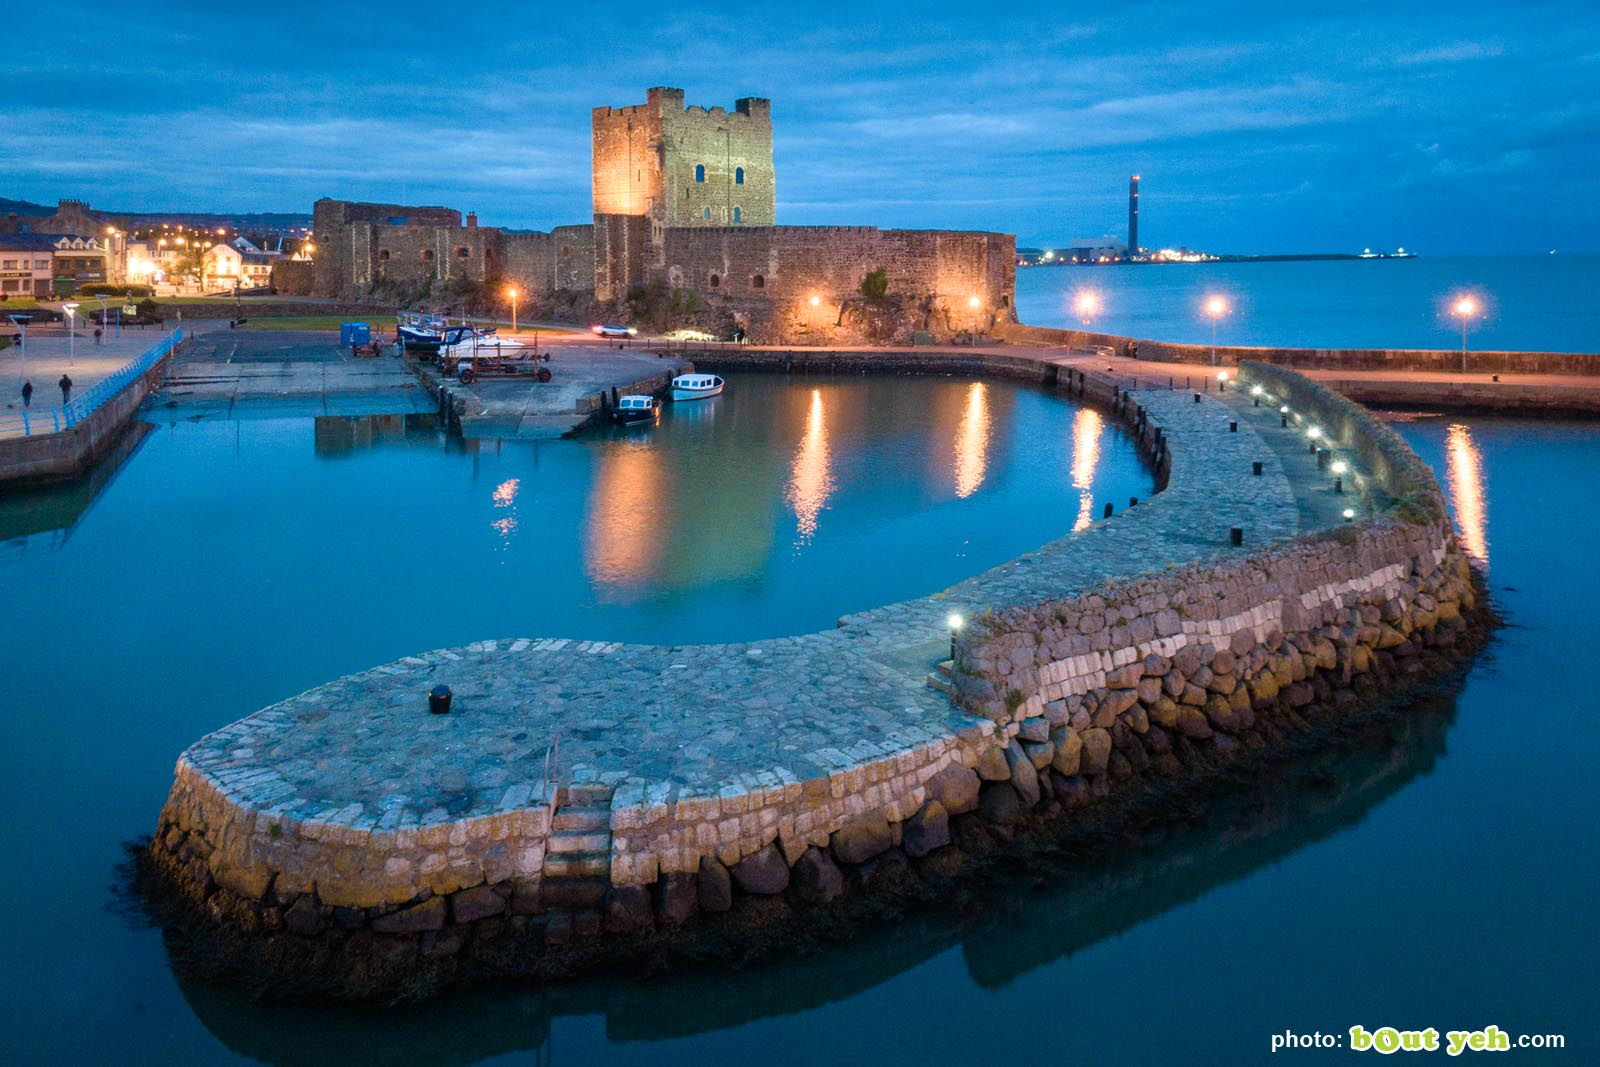 Carrickfergus Castle from the air at dusk - drone photograph 0181 by Bout Yeh photographers Belfast, Northern Ireland